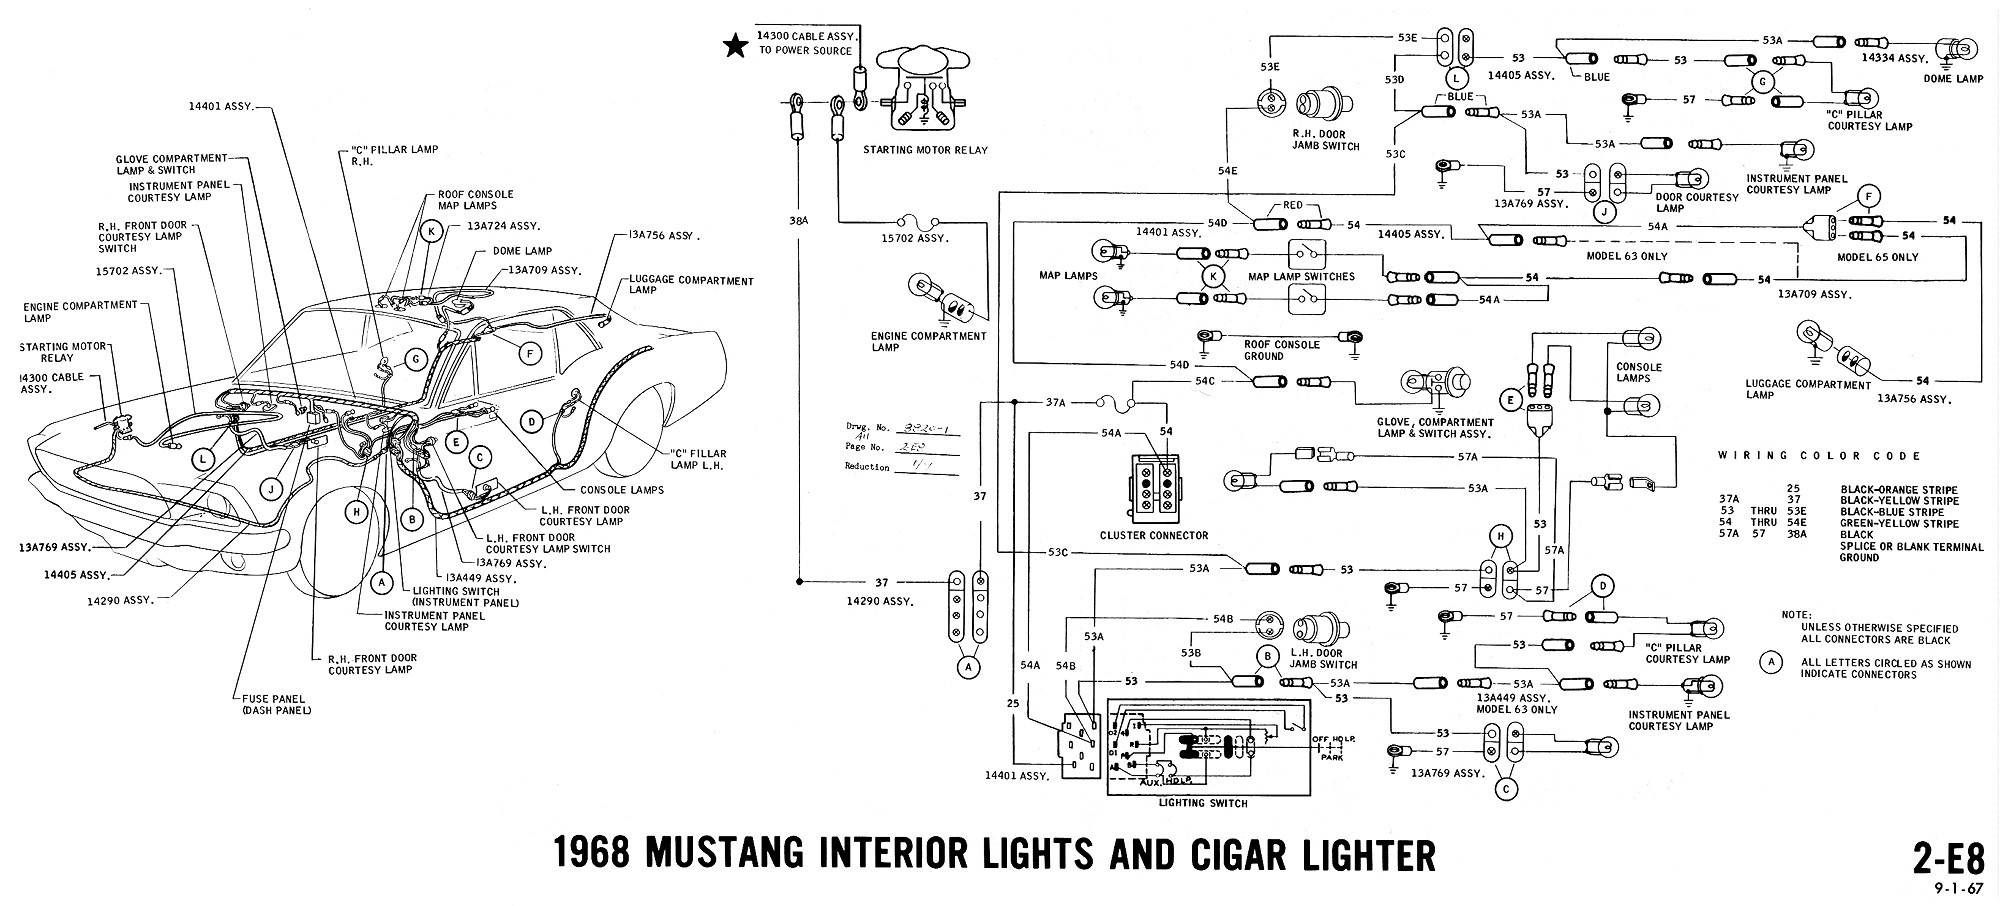 1970 Mustang Solenoid Wiring Diagram | Wiring Liry on mustang alternator wiring diagram, mustang solenoid valve, mustang wiring harness diagram, mustang engine wiring diagram,